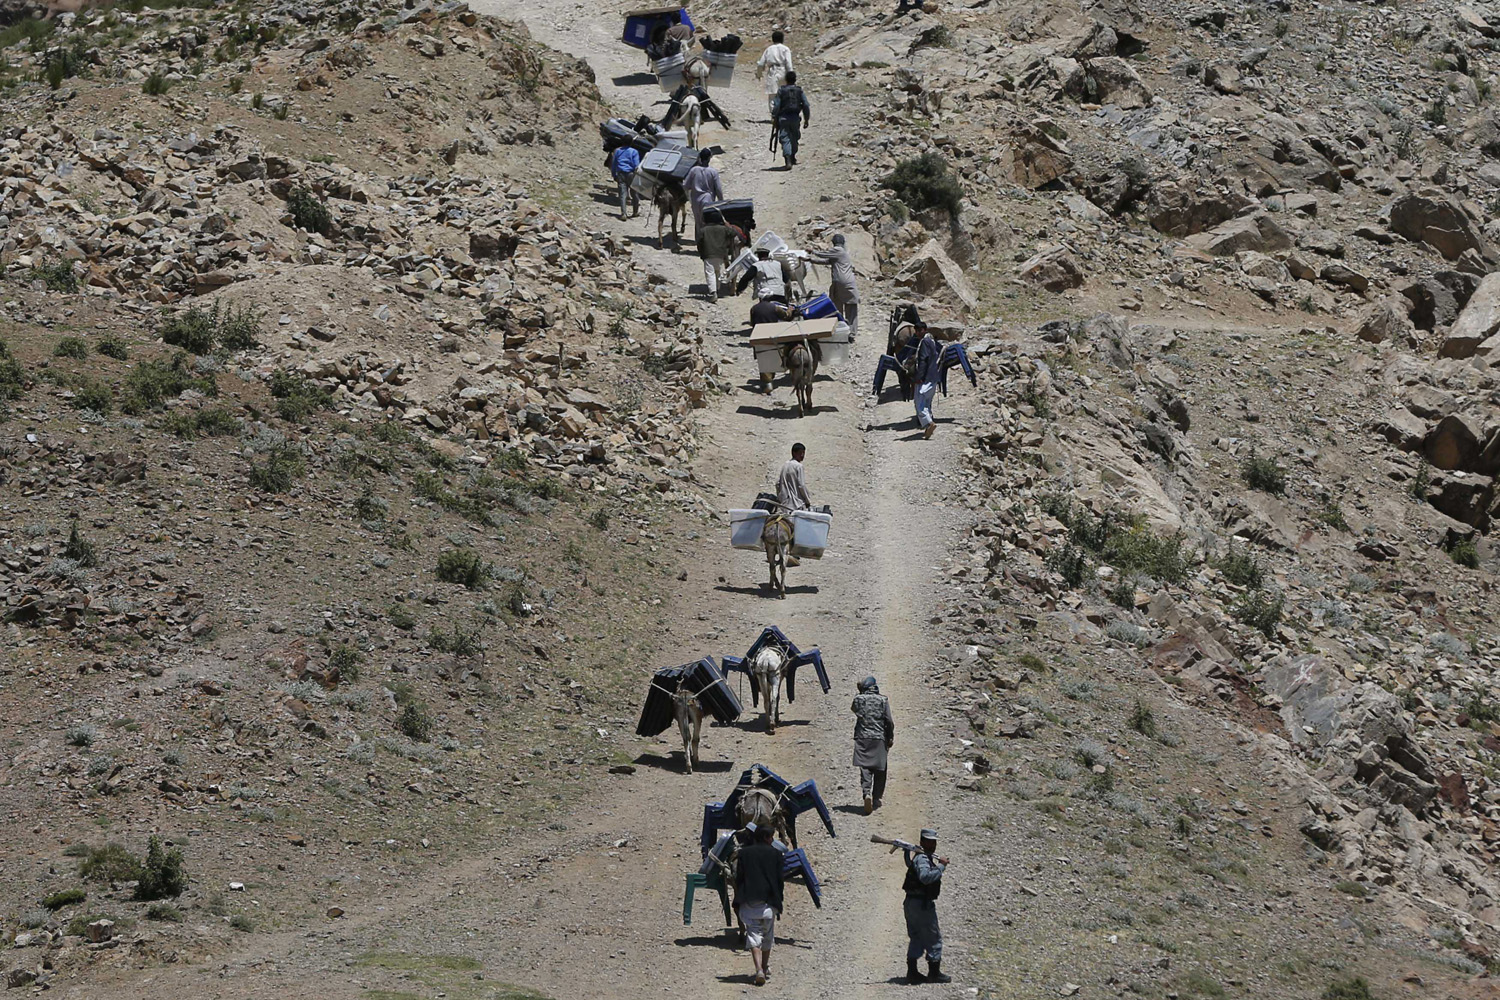 Jun. 13, 2014. Afghan men lead donkeys loaded with ballot boxes and other election material to be transported to polling stations which are not accessible by road in Shutul, Panjshir province.